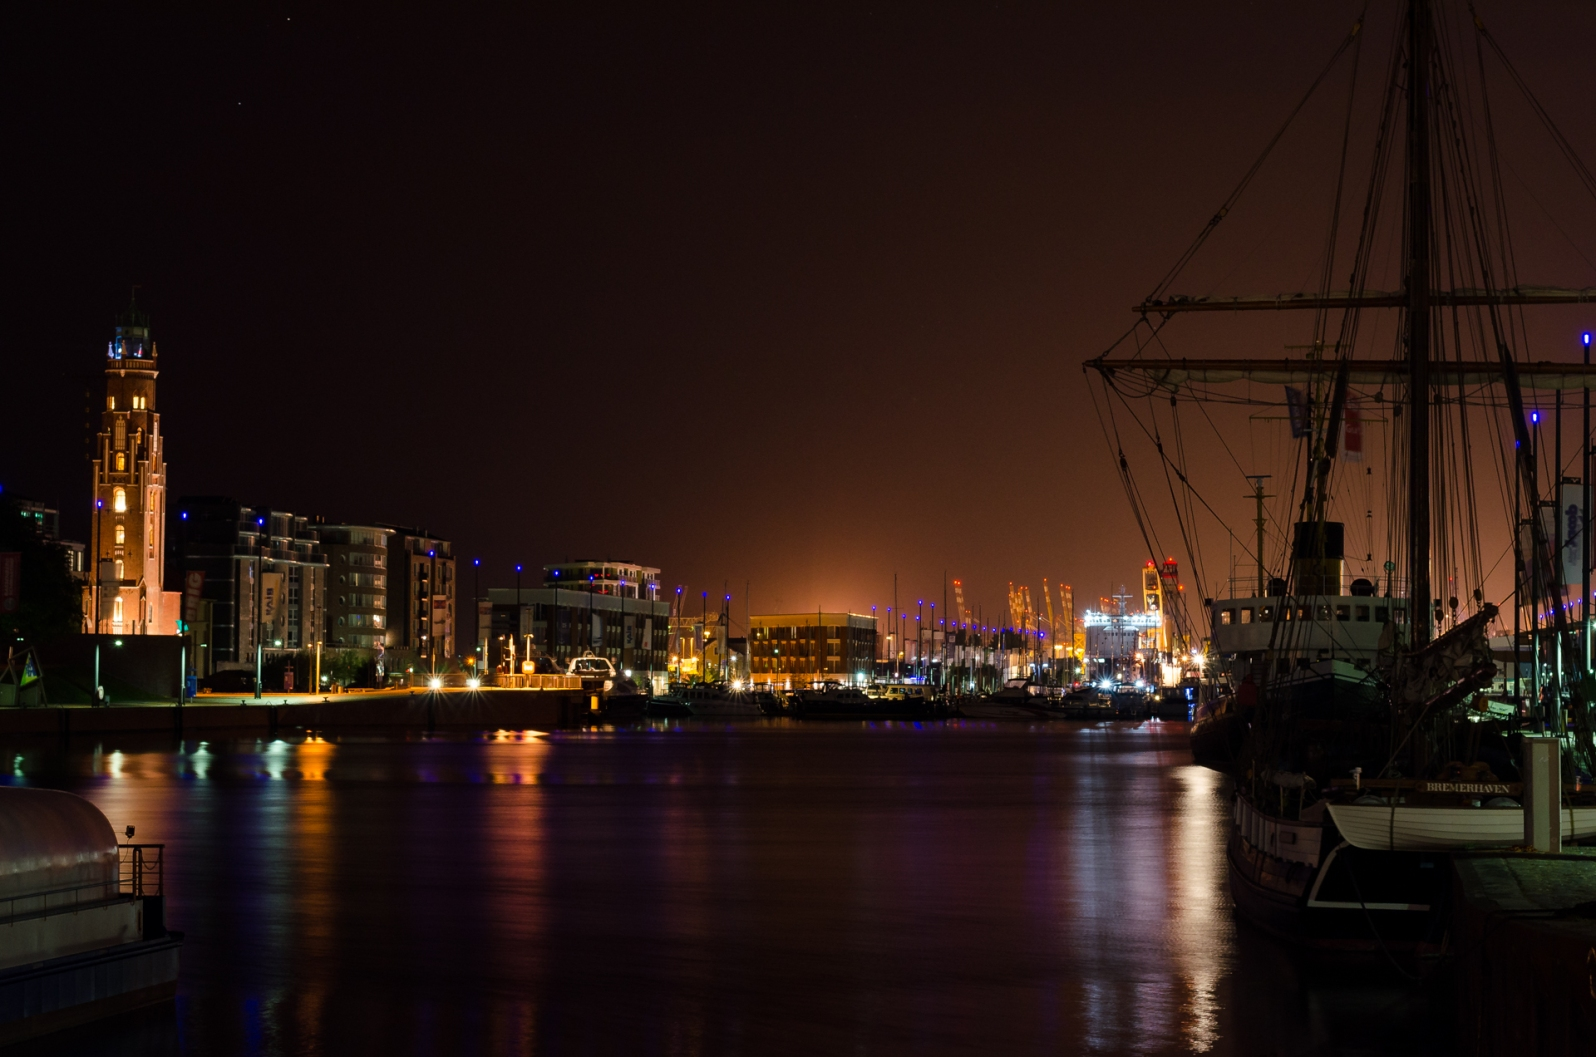 Bremerhaven by night